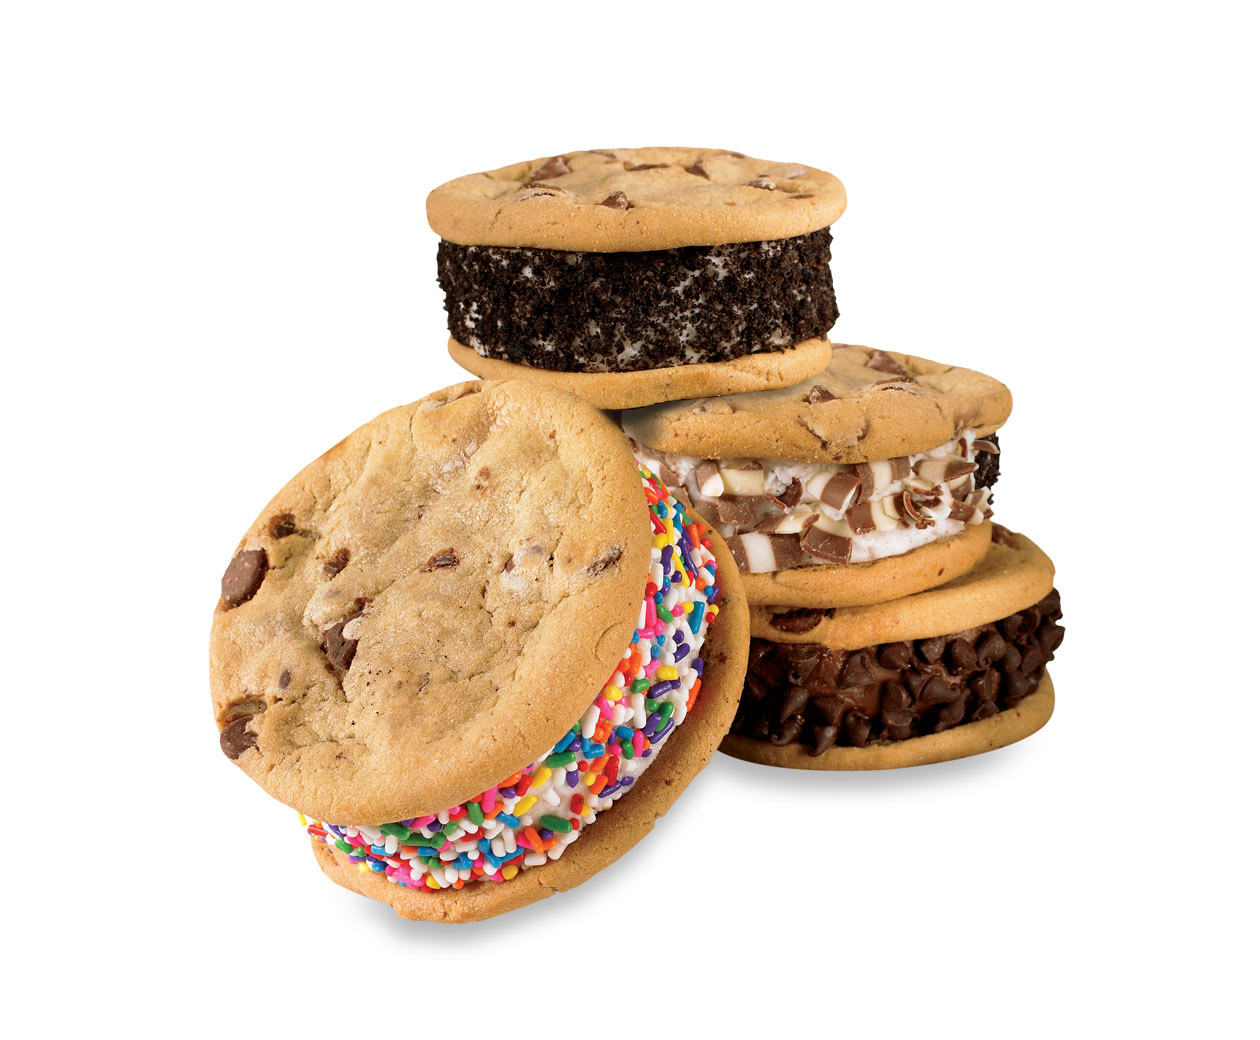 Cold Stone Ice Cream Sandwich Cookies | For Betty Crocker When She Co ...